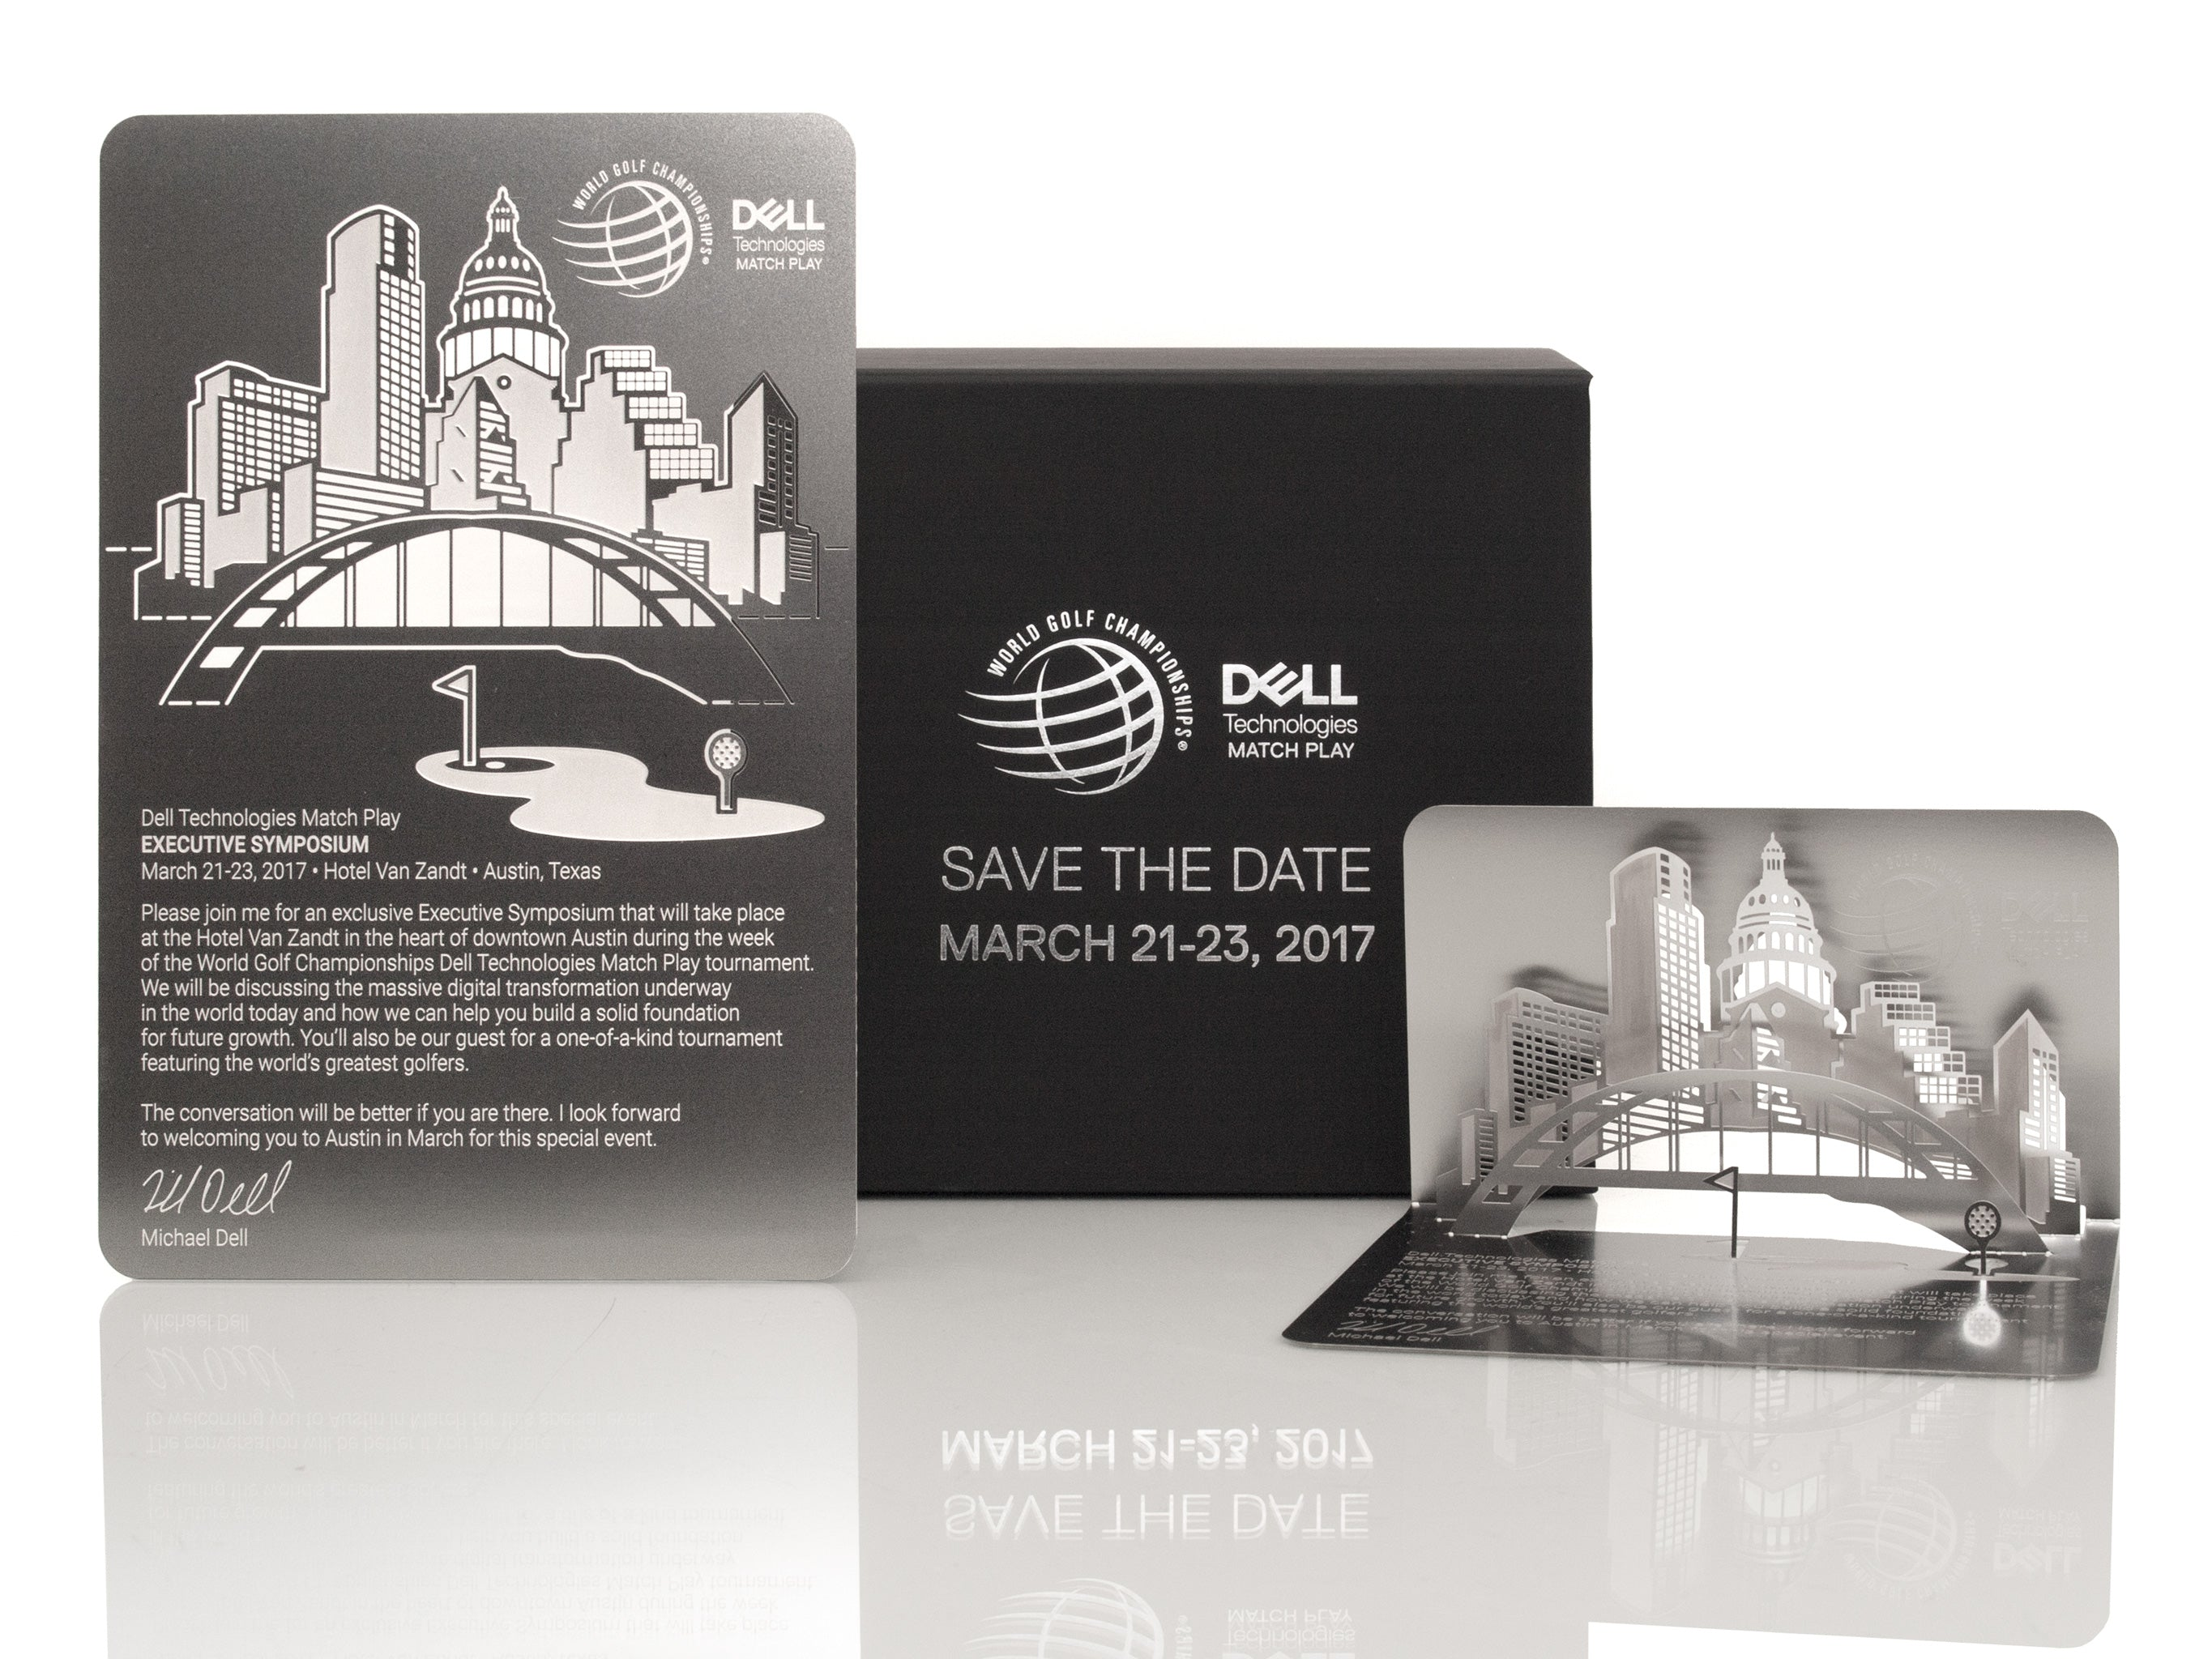 Dell Matchplay Folded Metal Corporate Invitation In Box Ensemble